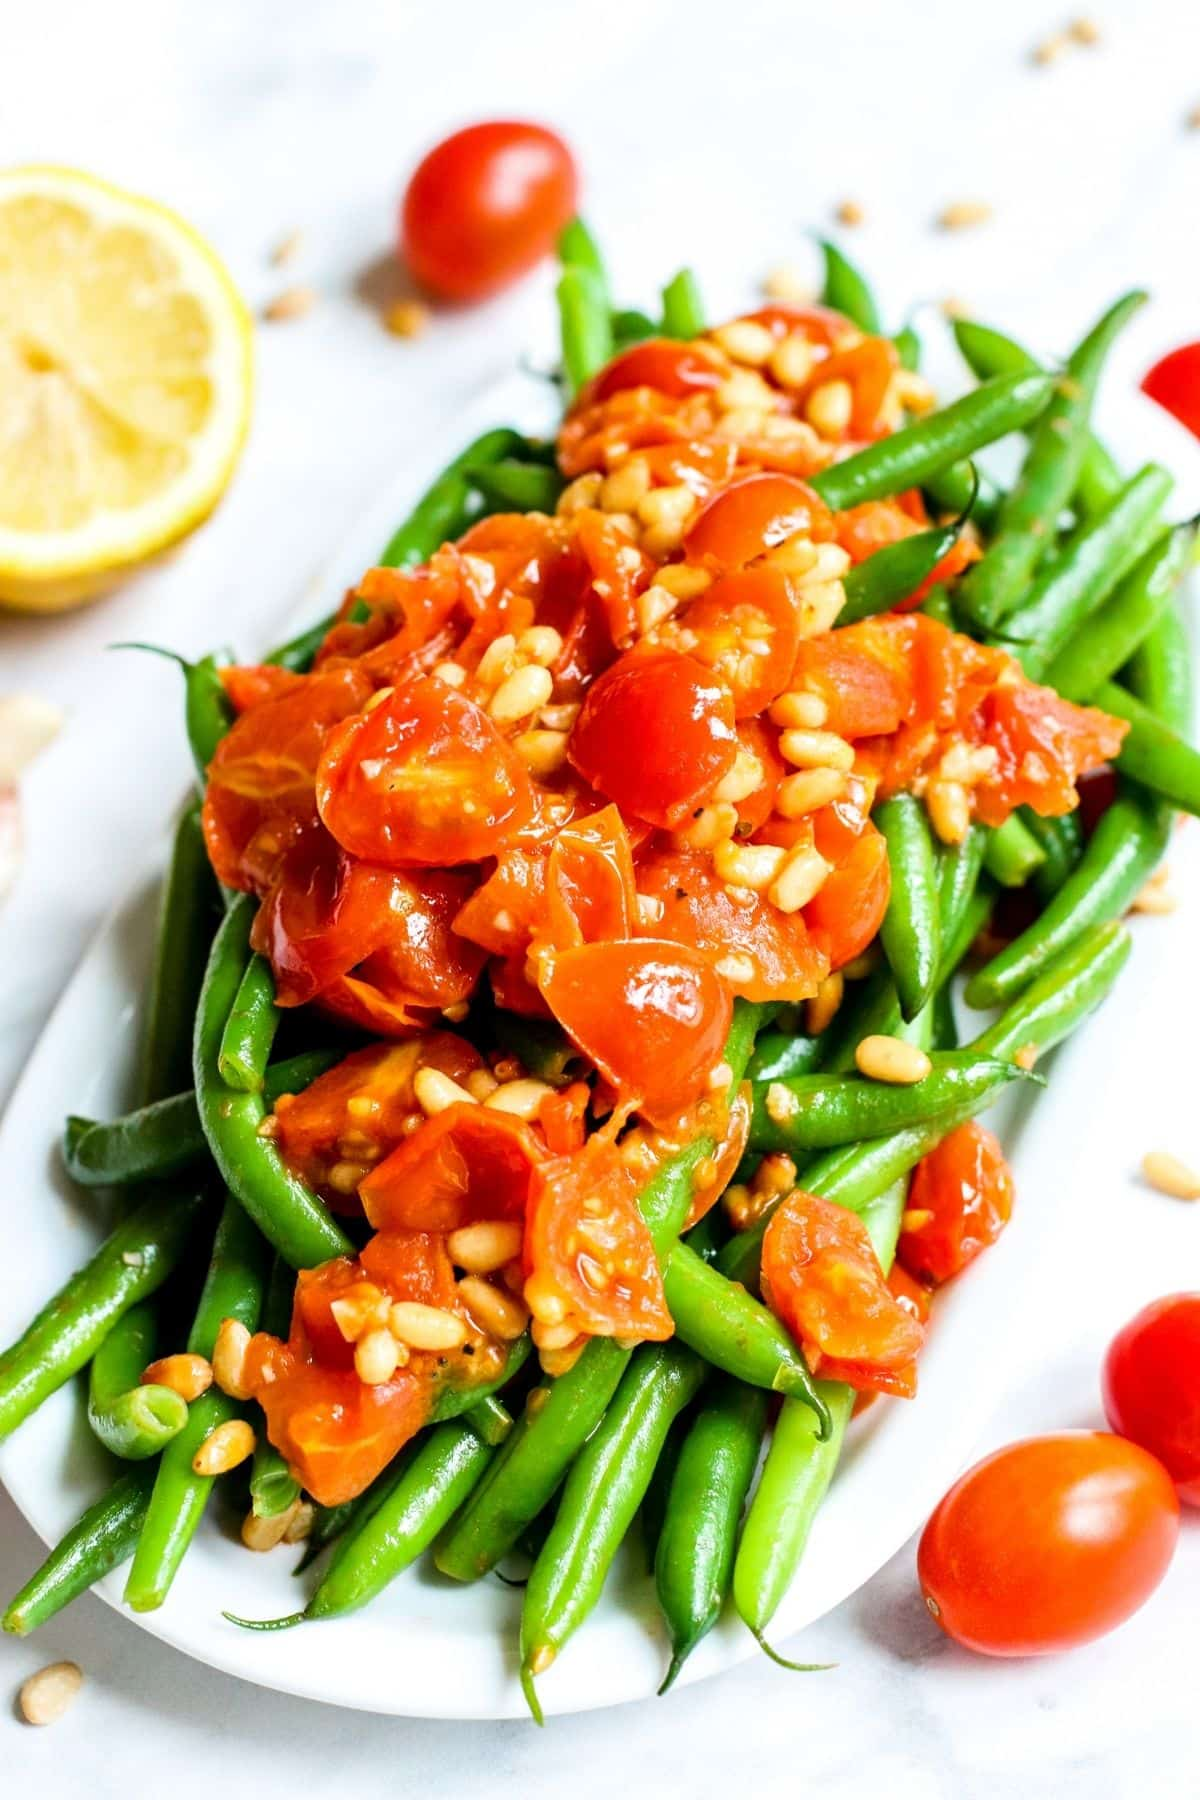 Platter of green beans topped with cooked cherry tomatoes and pine nuts with a cut lemon in the background